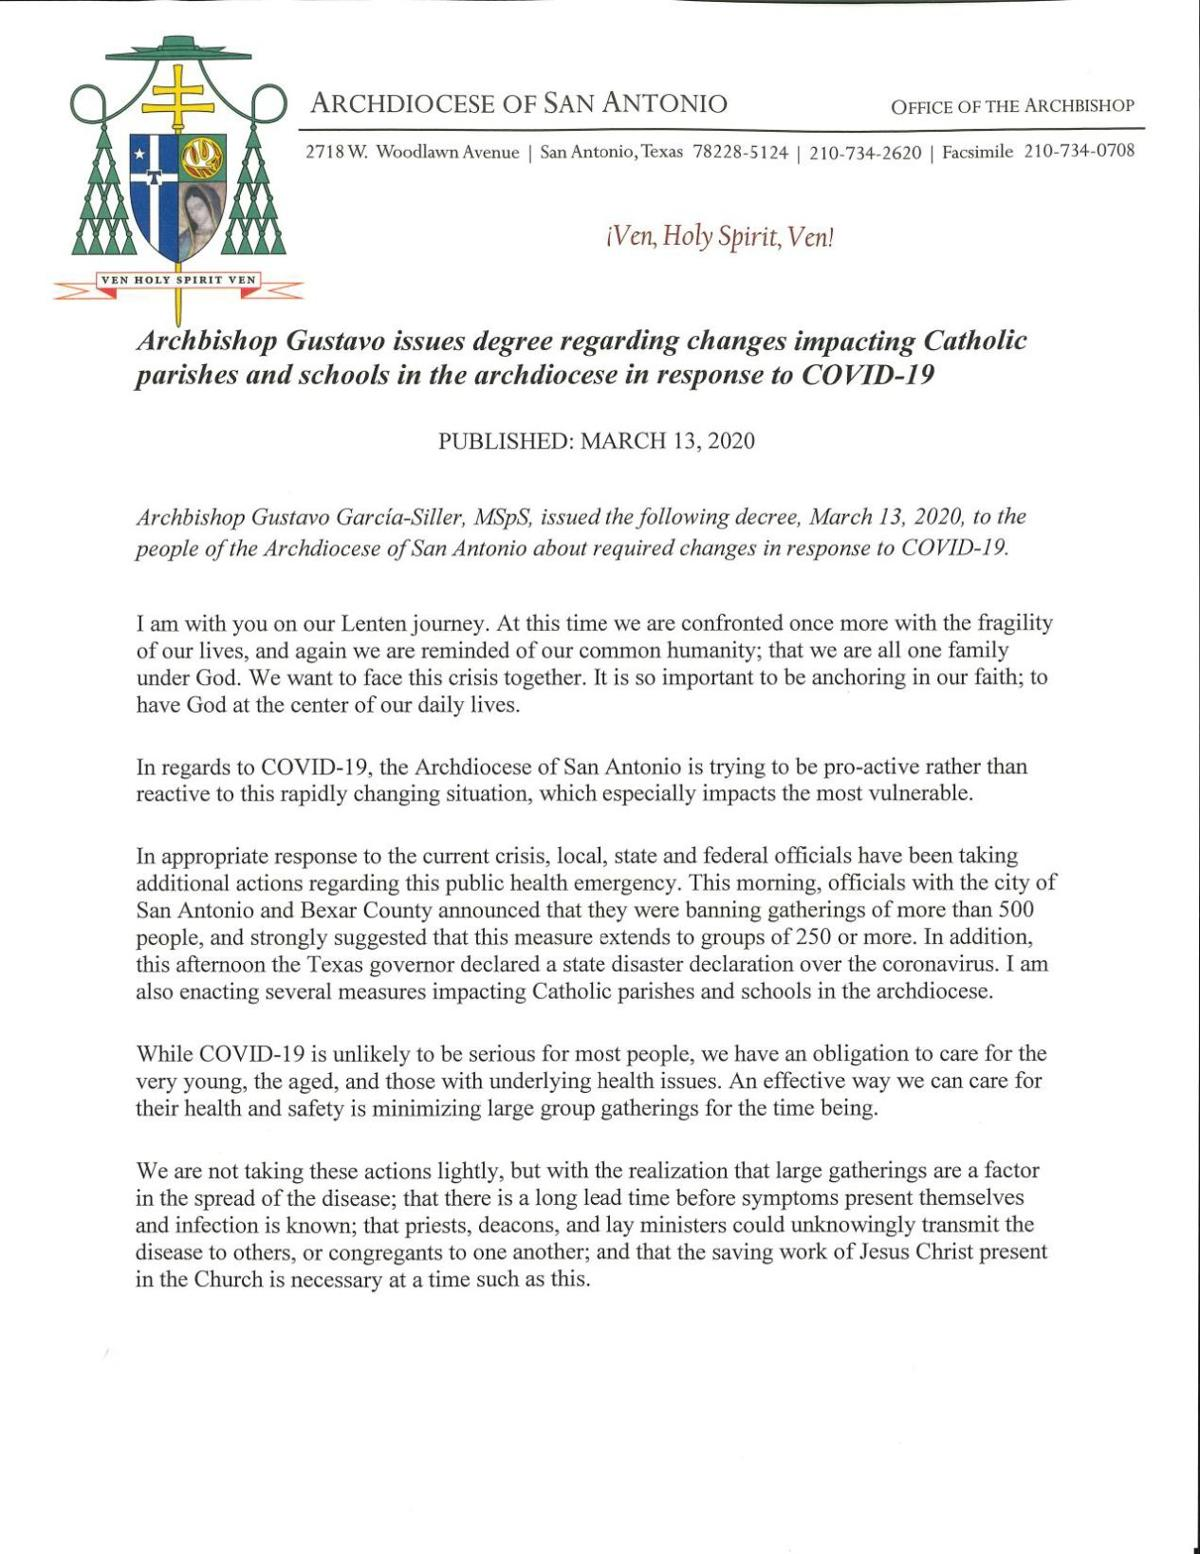 Message from the Archdiocese of San Antonio